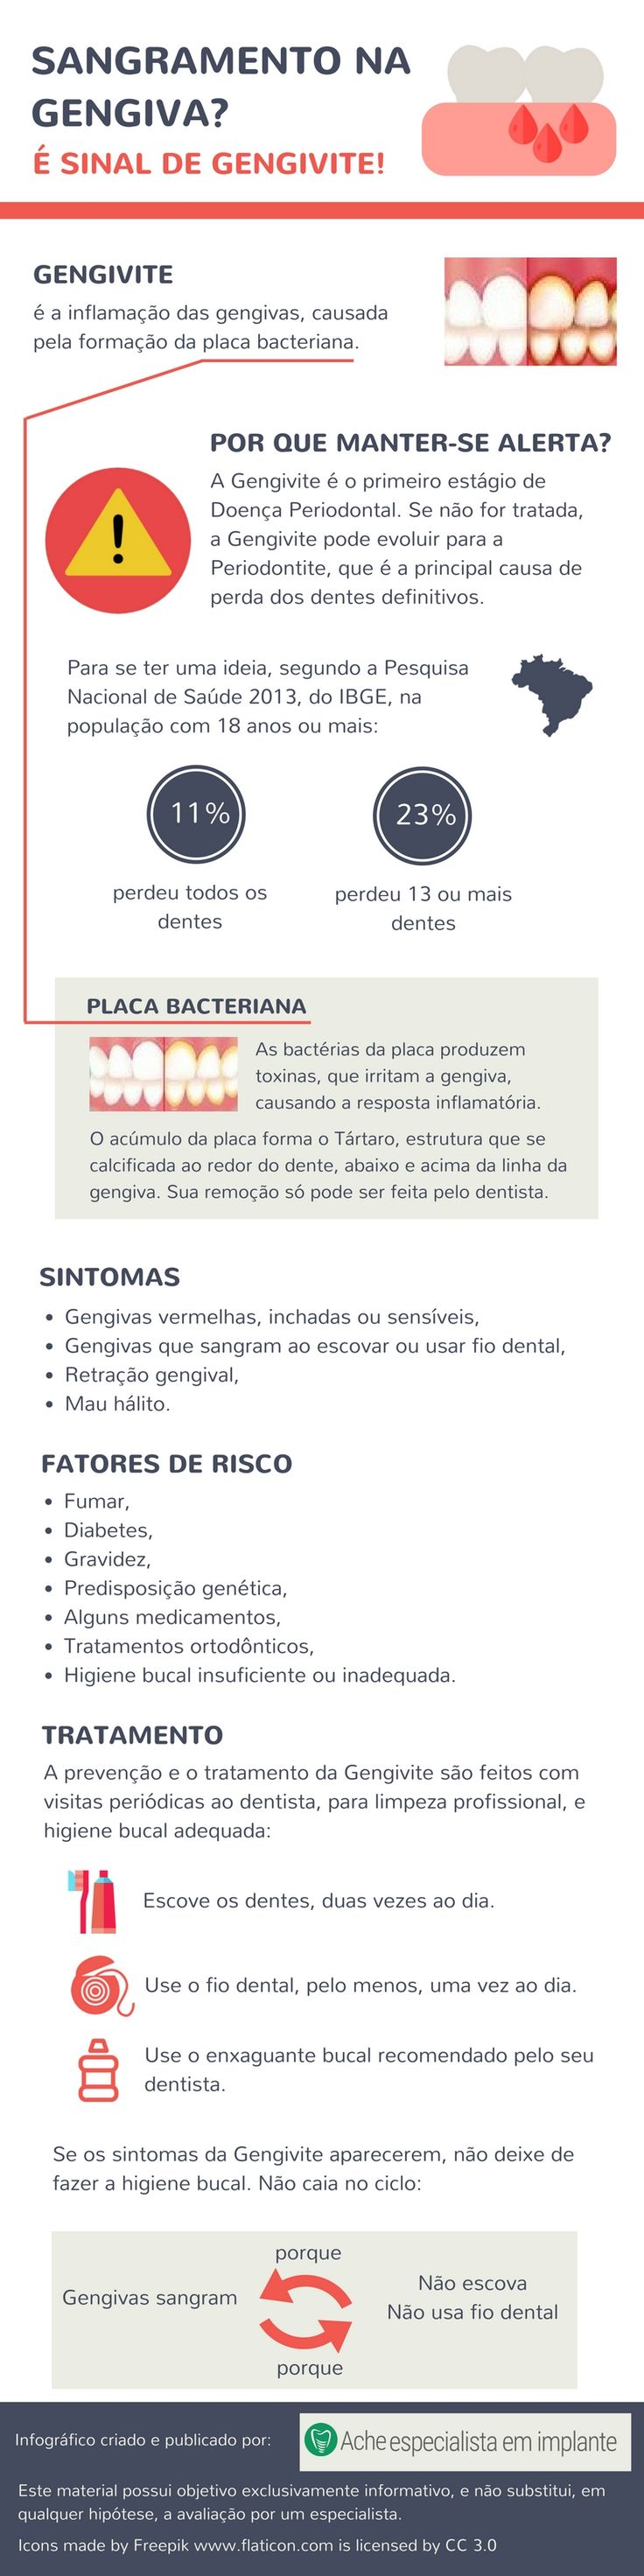 Sangramento na gengiva? [Infográfico] - Ache especialista em implante http://reviewscircle.com/health-fitness/dental-health/natural-teeth-whitening